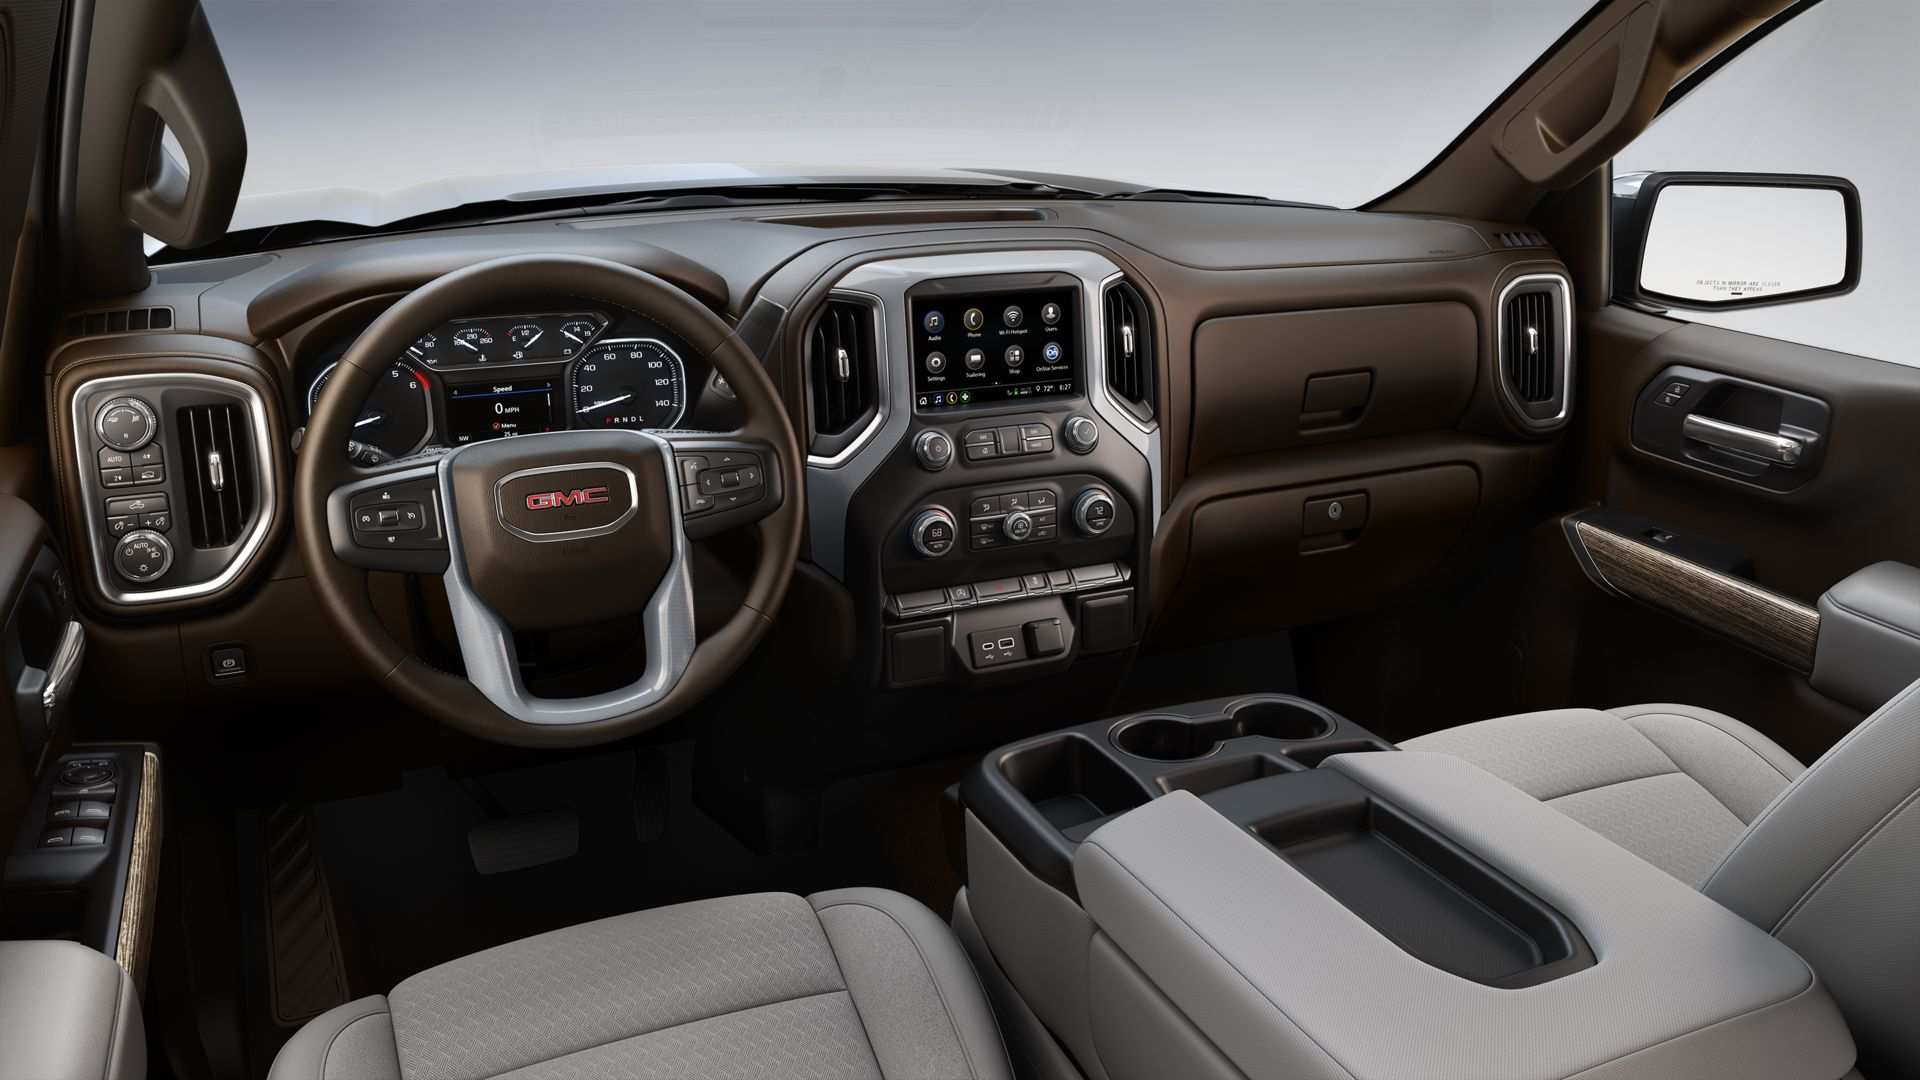 95 The 2019 GMC Sierra 1500 Diesel Review And Release Date